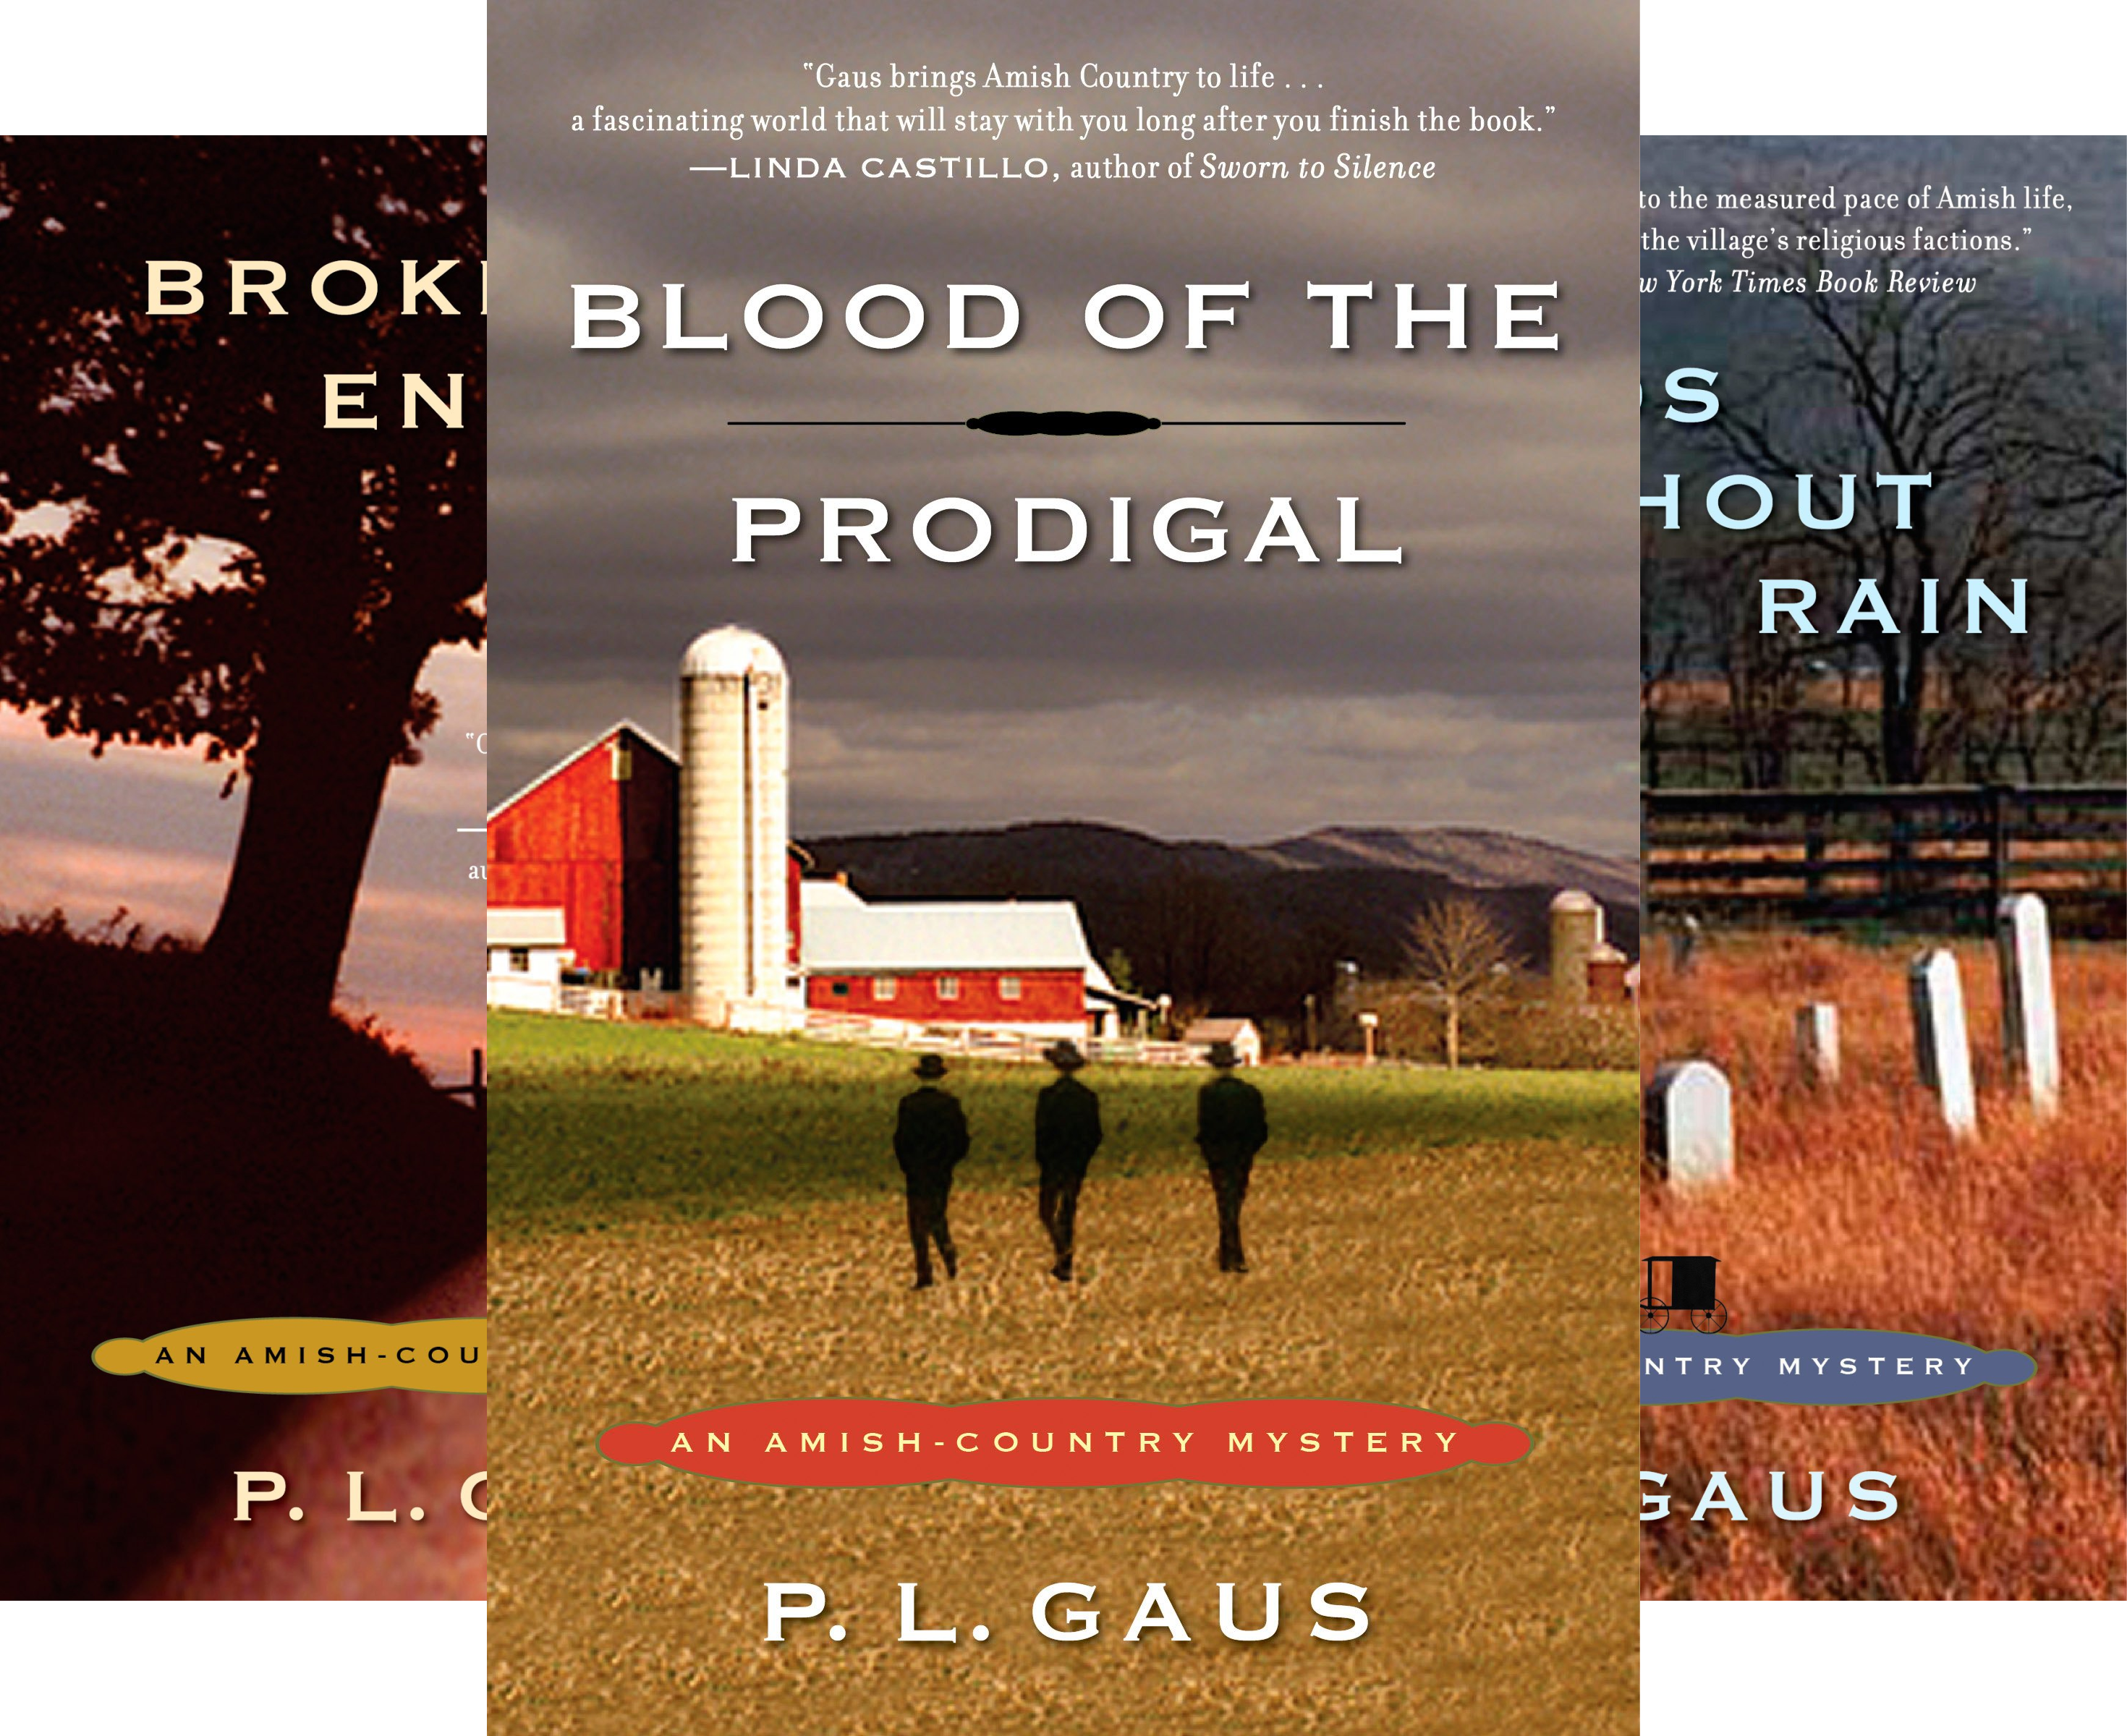 An Amish-Country Mystery (9 Book Series)